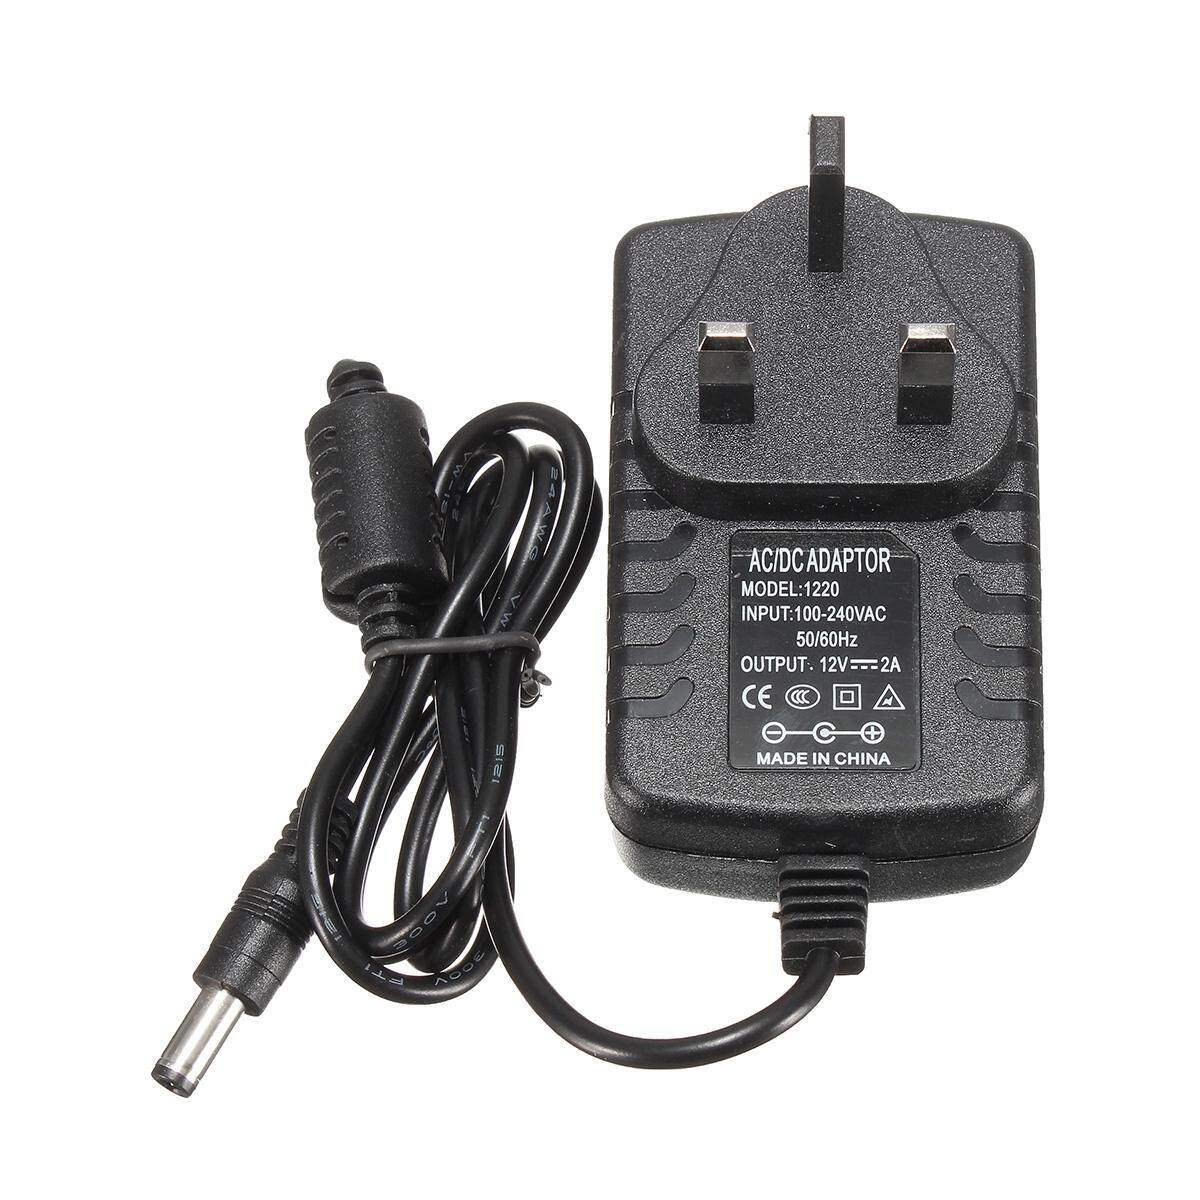 12v 2a Mains Power Supply Adaptor Charger For Bose Soundlink-Mini By Freebang.